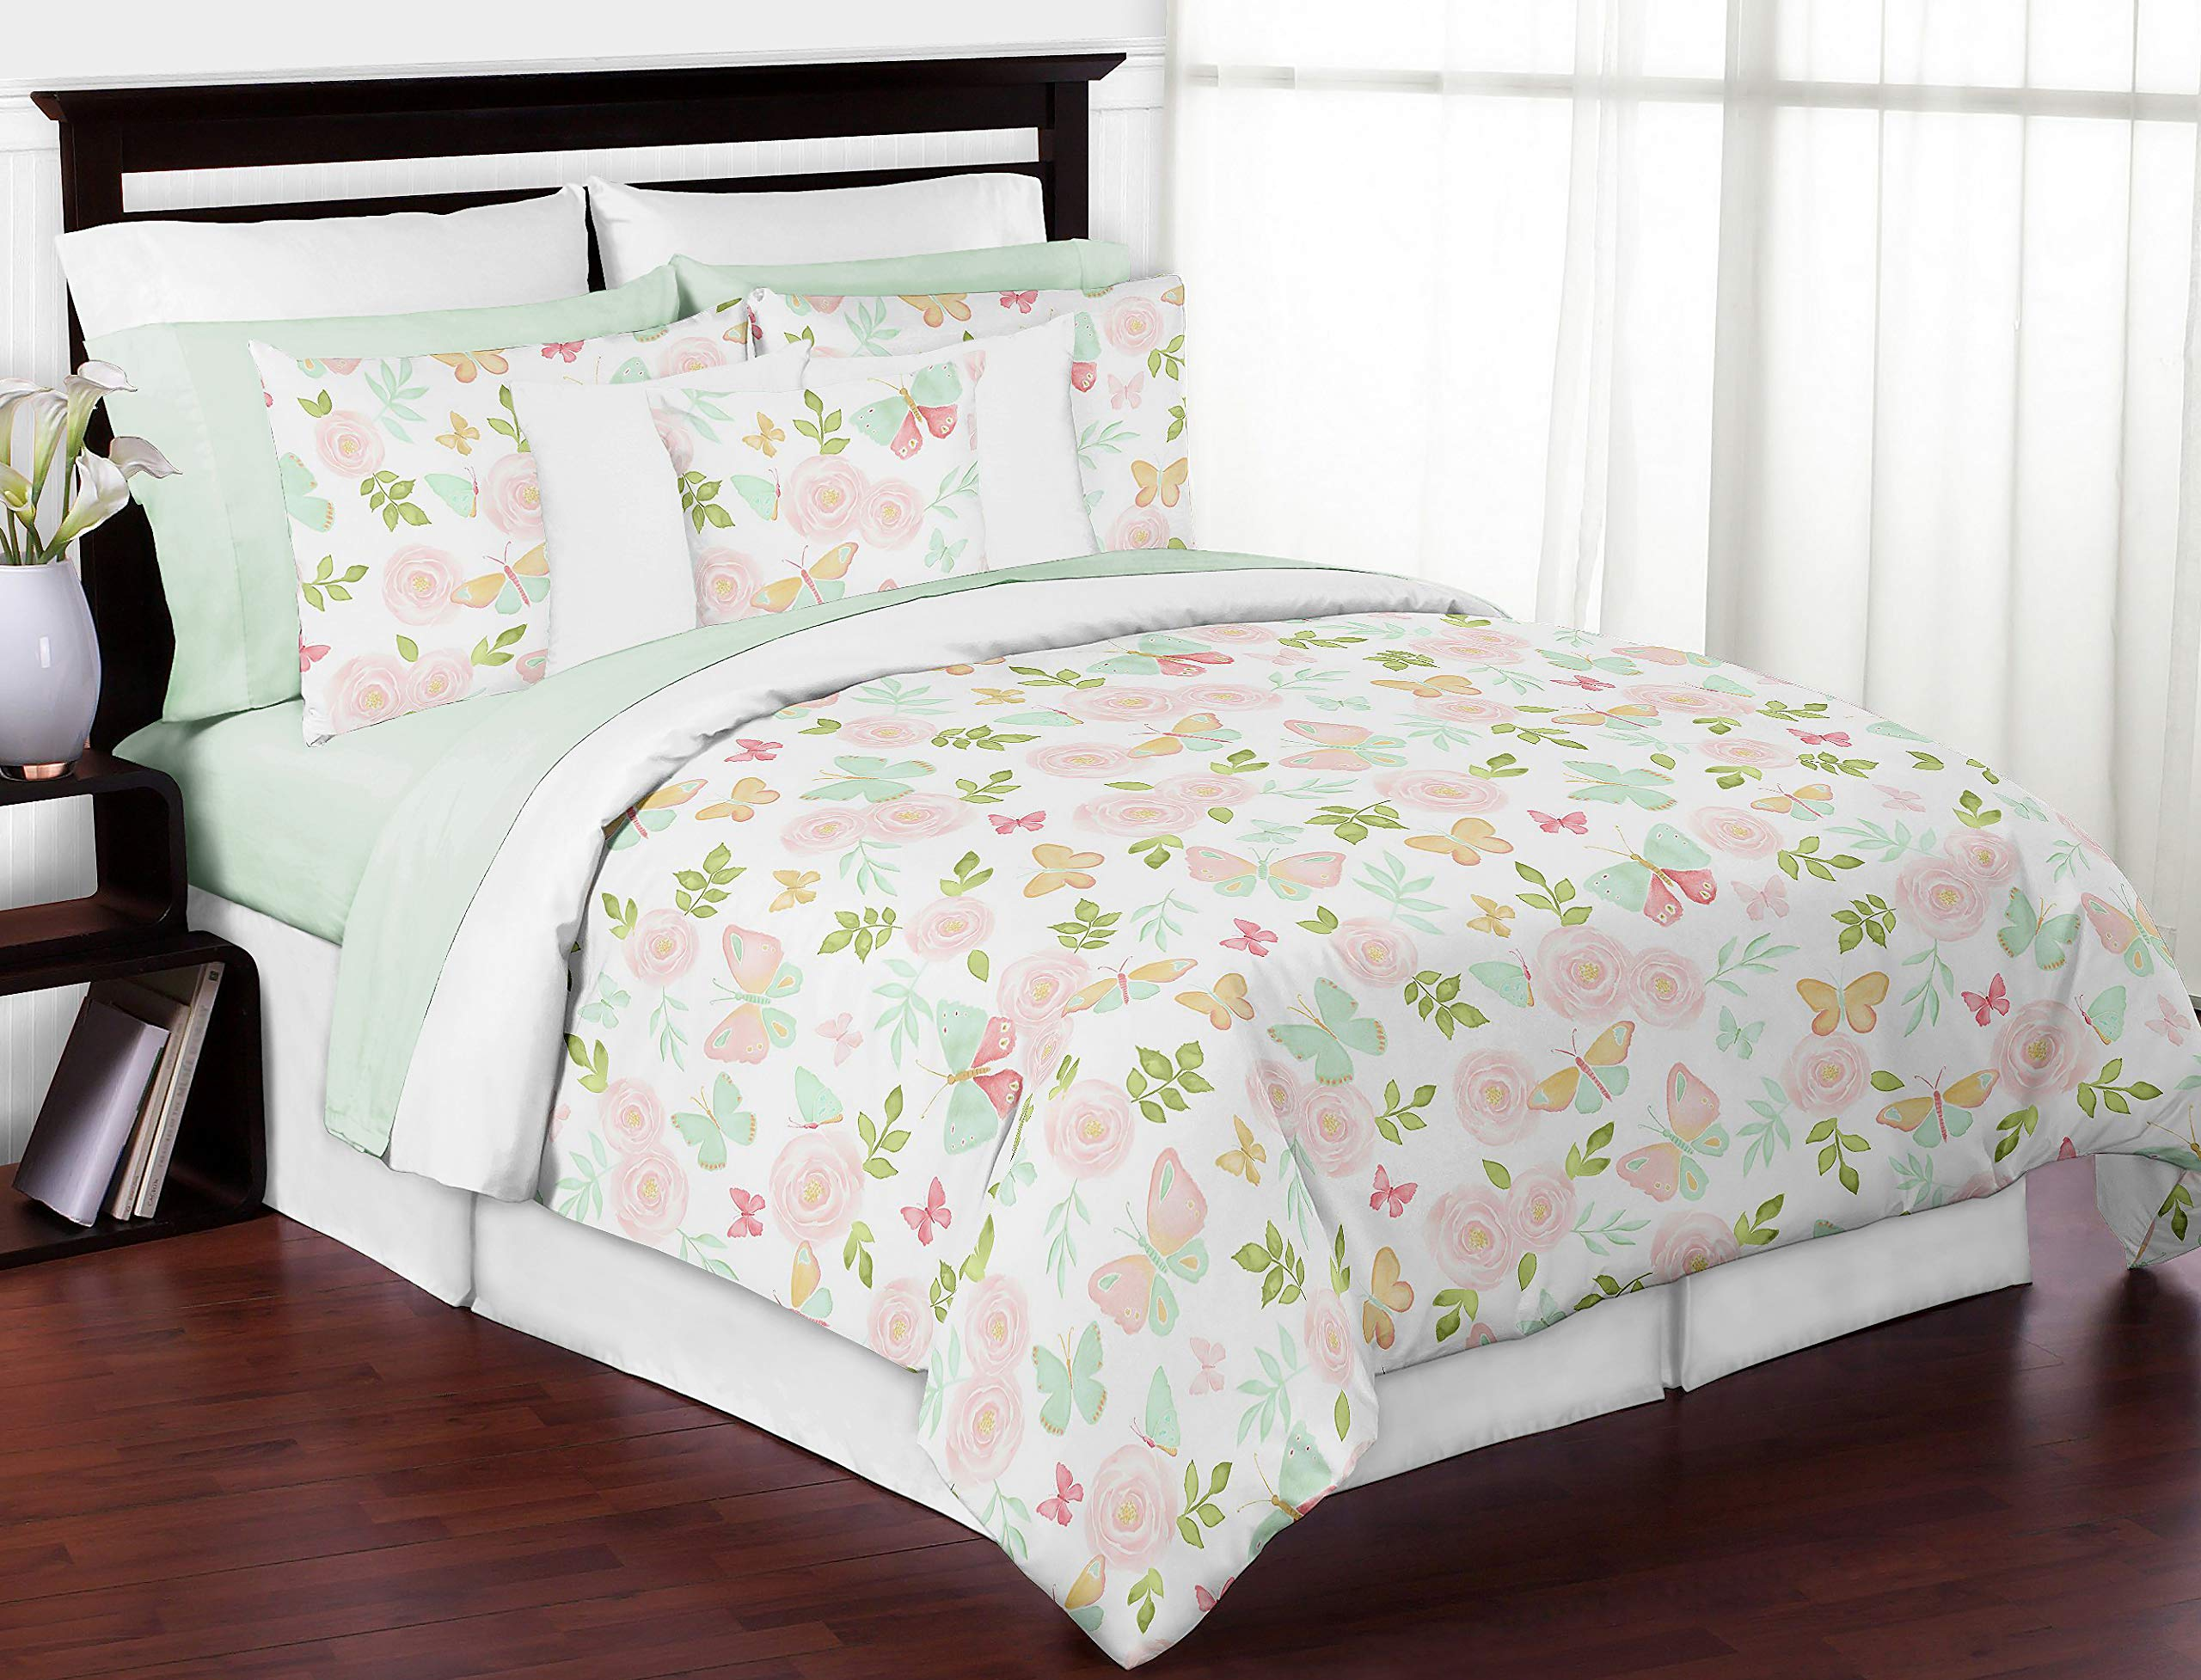 Sweet Jojo Designs Blush Pink, Mint and White Shabby Chic Butterfly Floral Girl Full/Queen Kid Teen Bedding Comforter Set - 3 Pieces - Watercolor Rose, Green, Gold